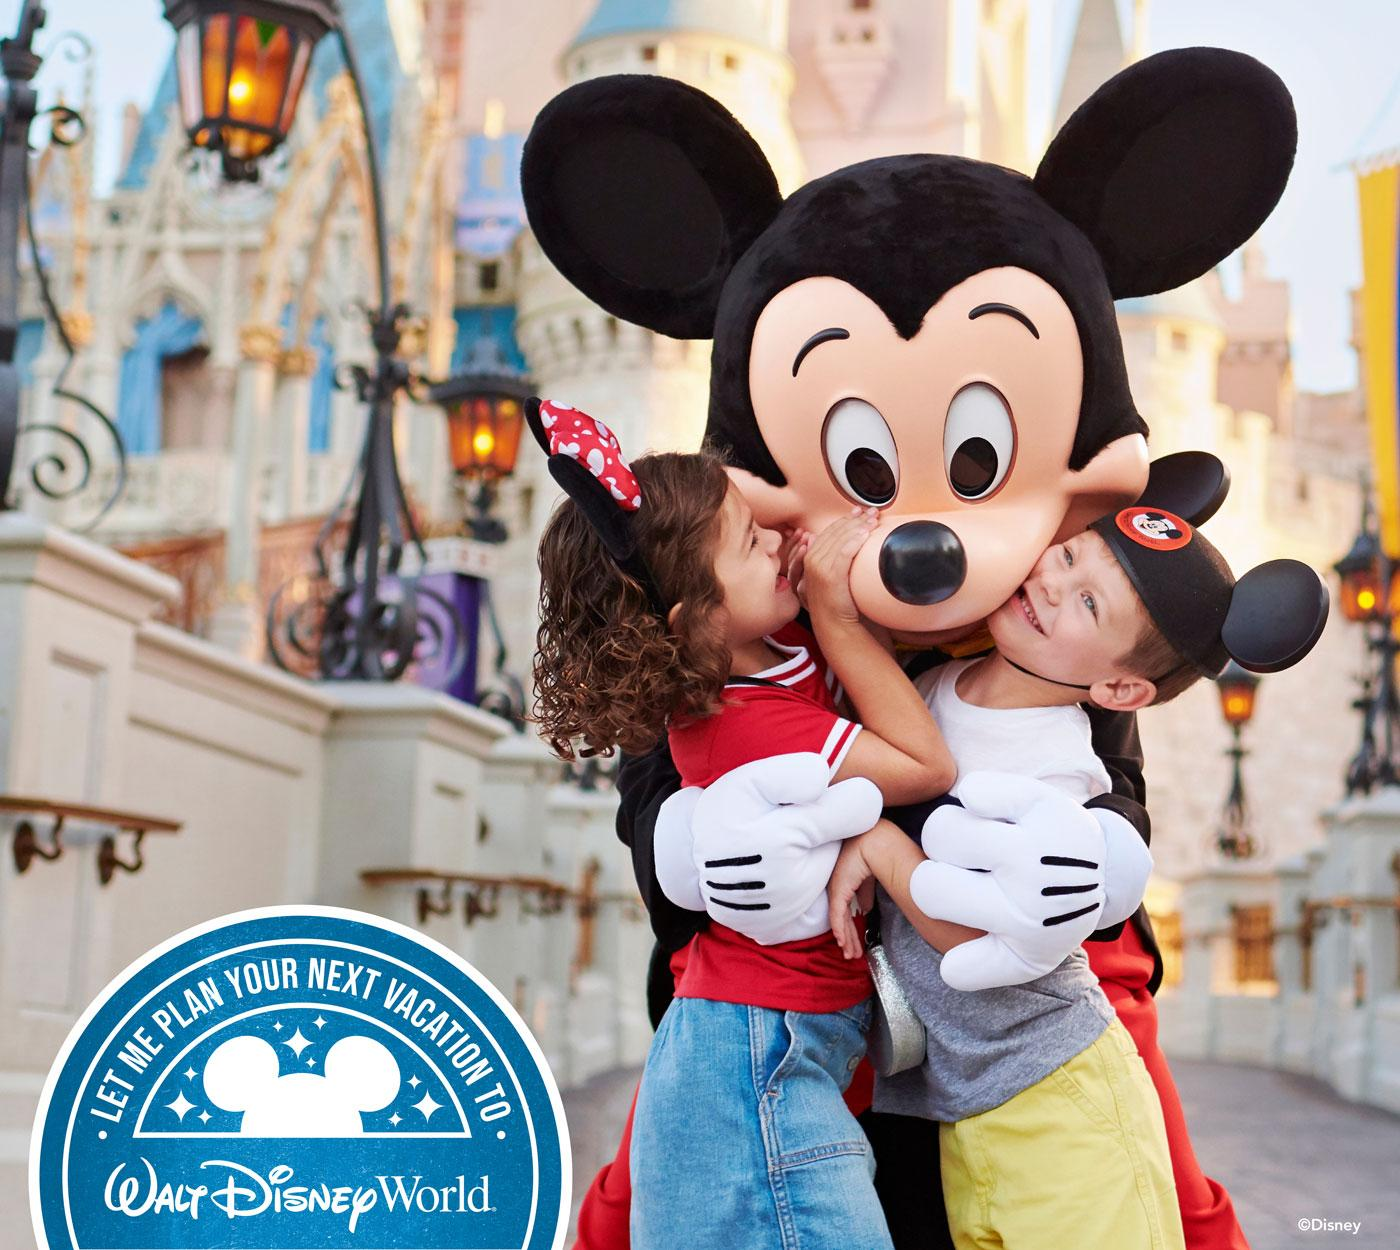 two smiling children wearing mickey mouse ears are hugged by Mickey Mouse in front of the Disney castle at Walt Disney World.